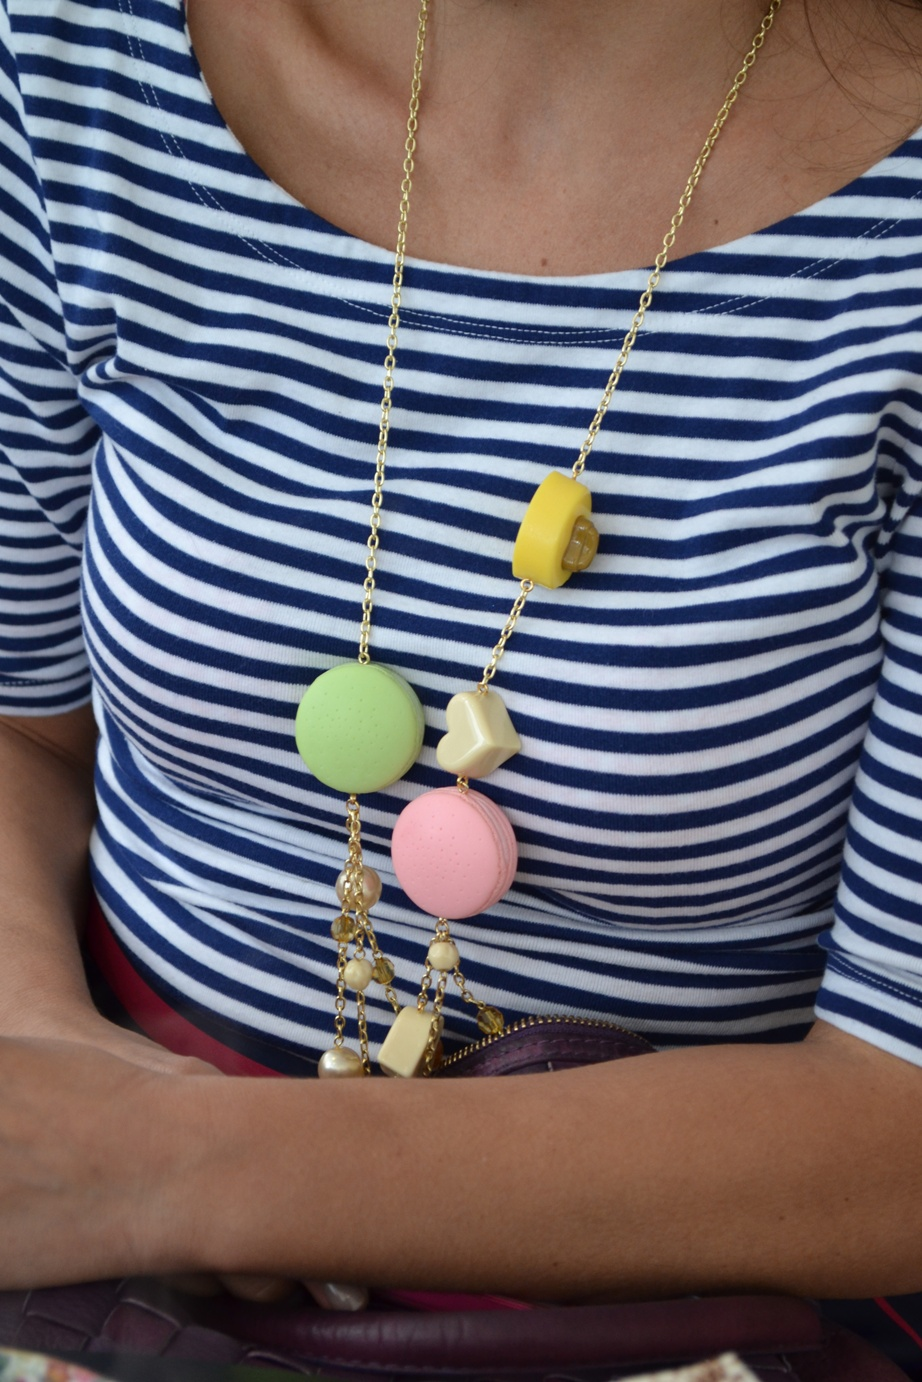 Long, draping Macaron necklace from N2 Les Nereides